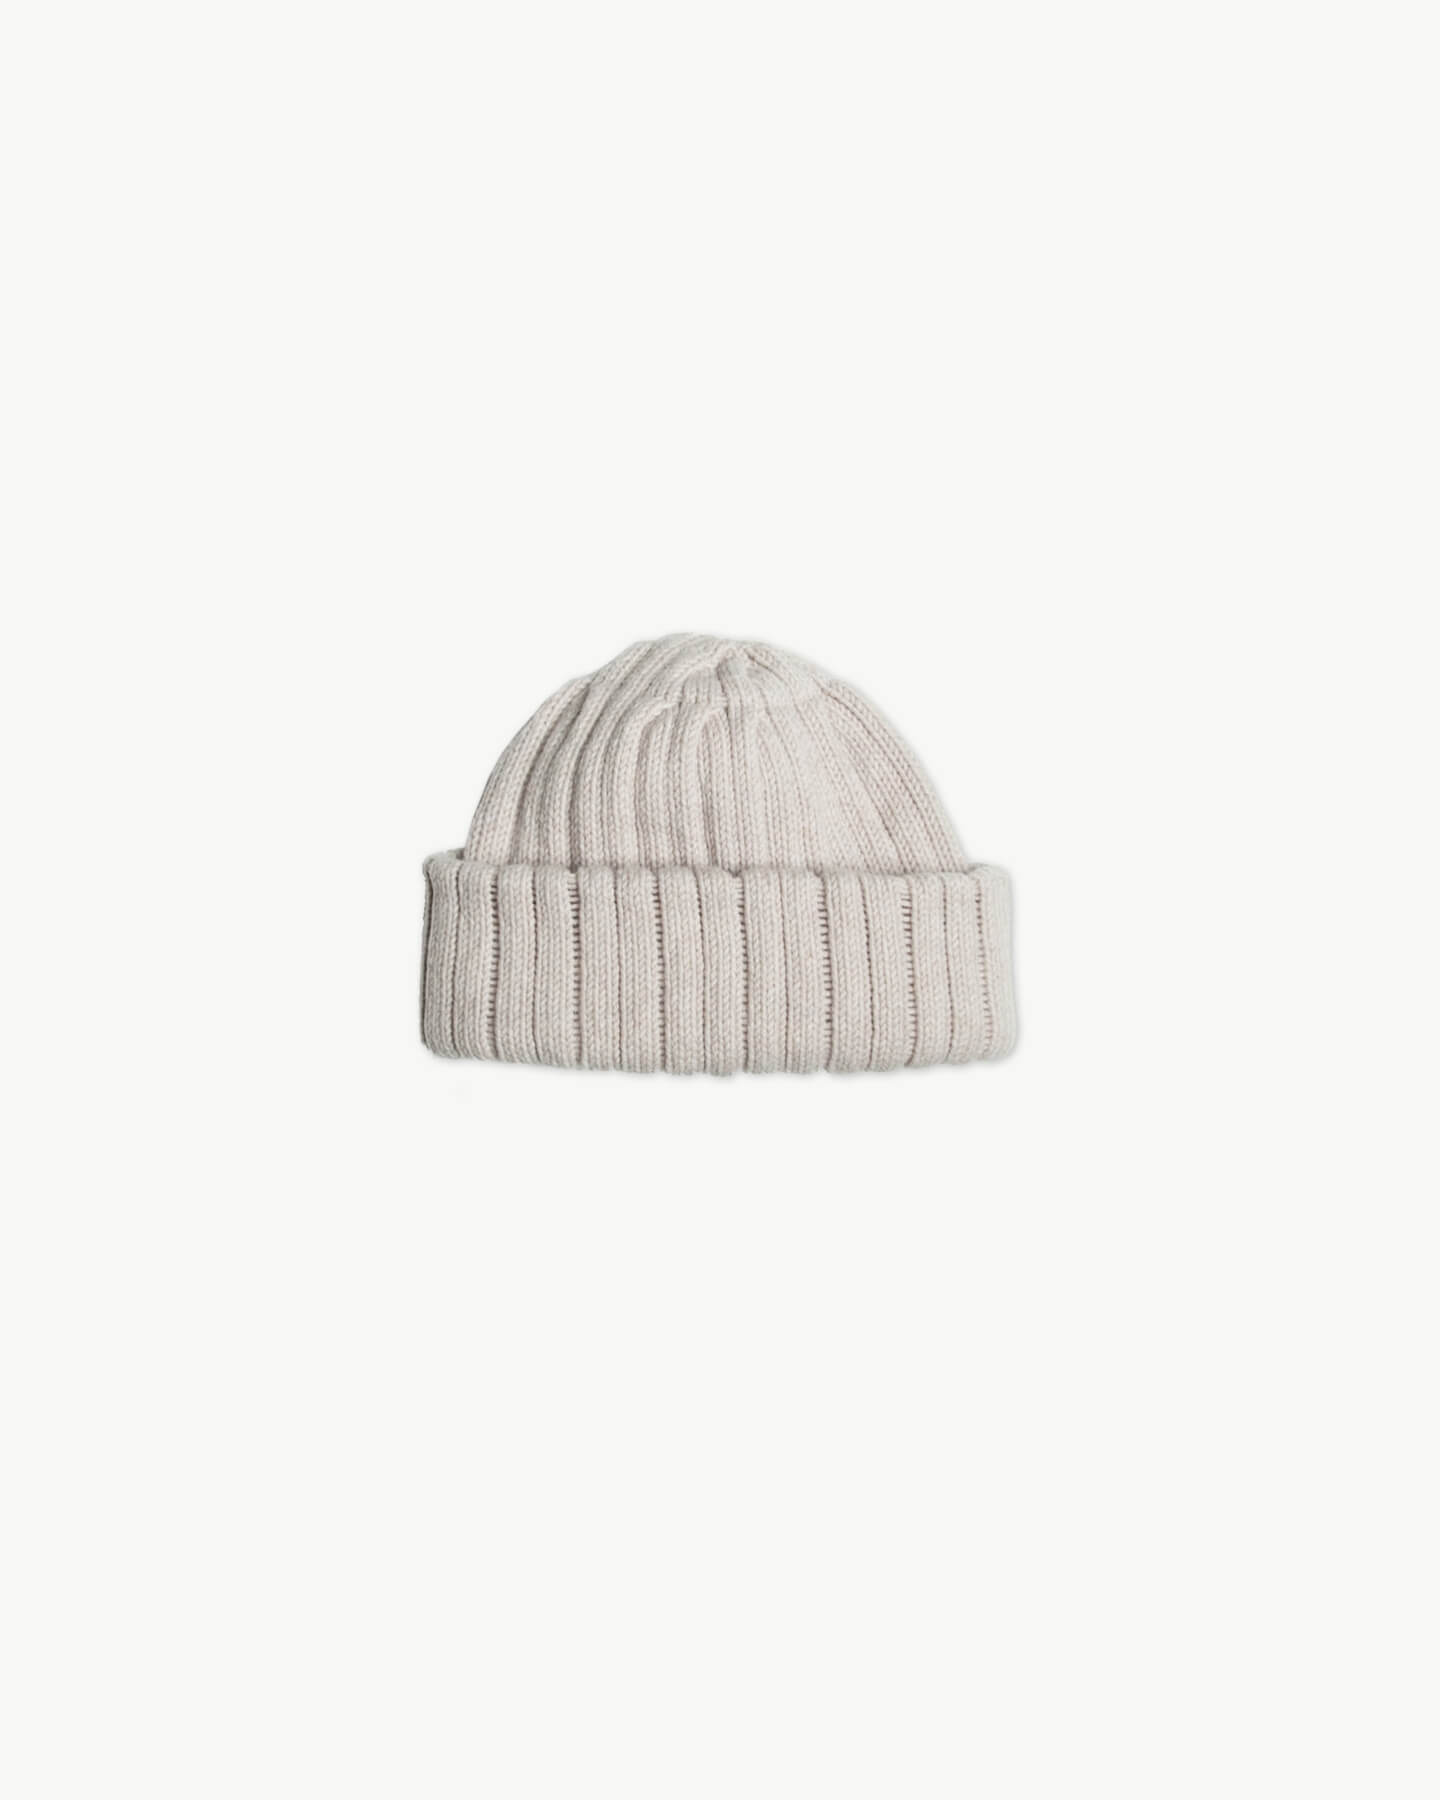 Shop our High quality bonnet of wool